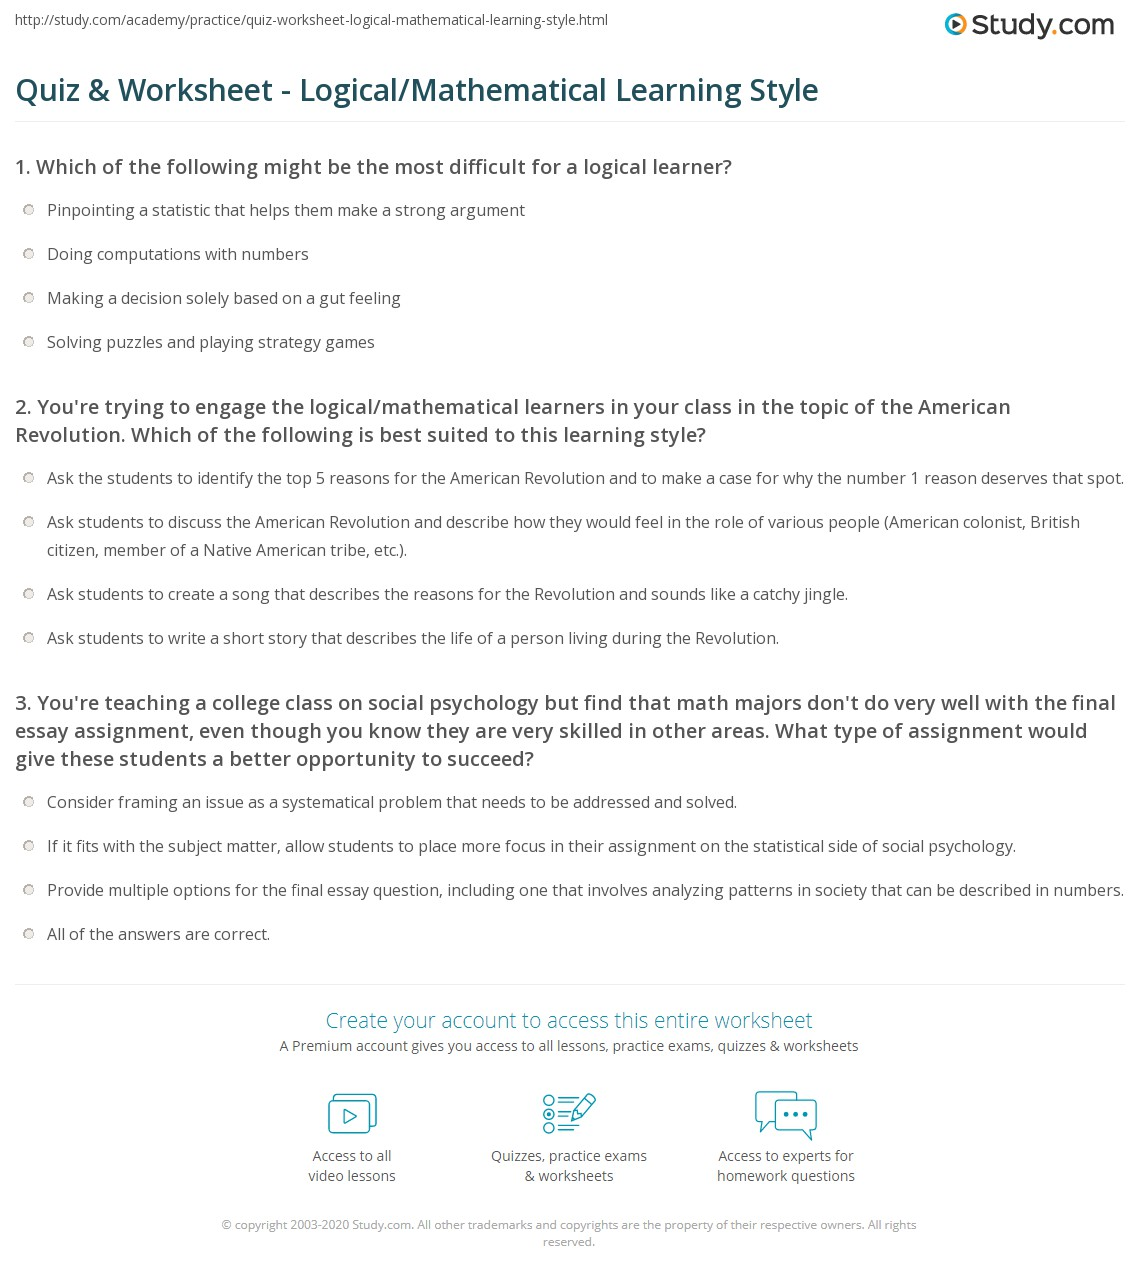 quiz worksheet logical mathematical learning style com you re trying to engage the logical mathematical learners in your class in the topic of the american revolution which of the following is best suited to